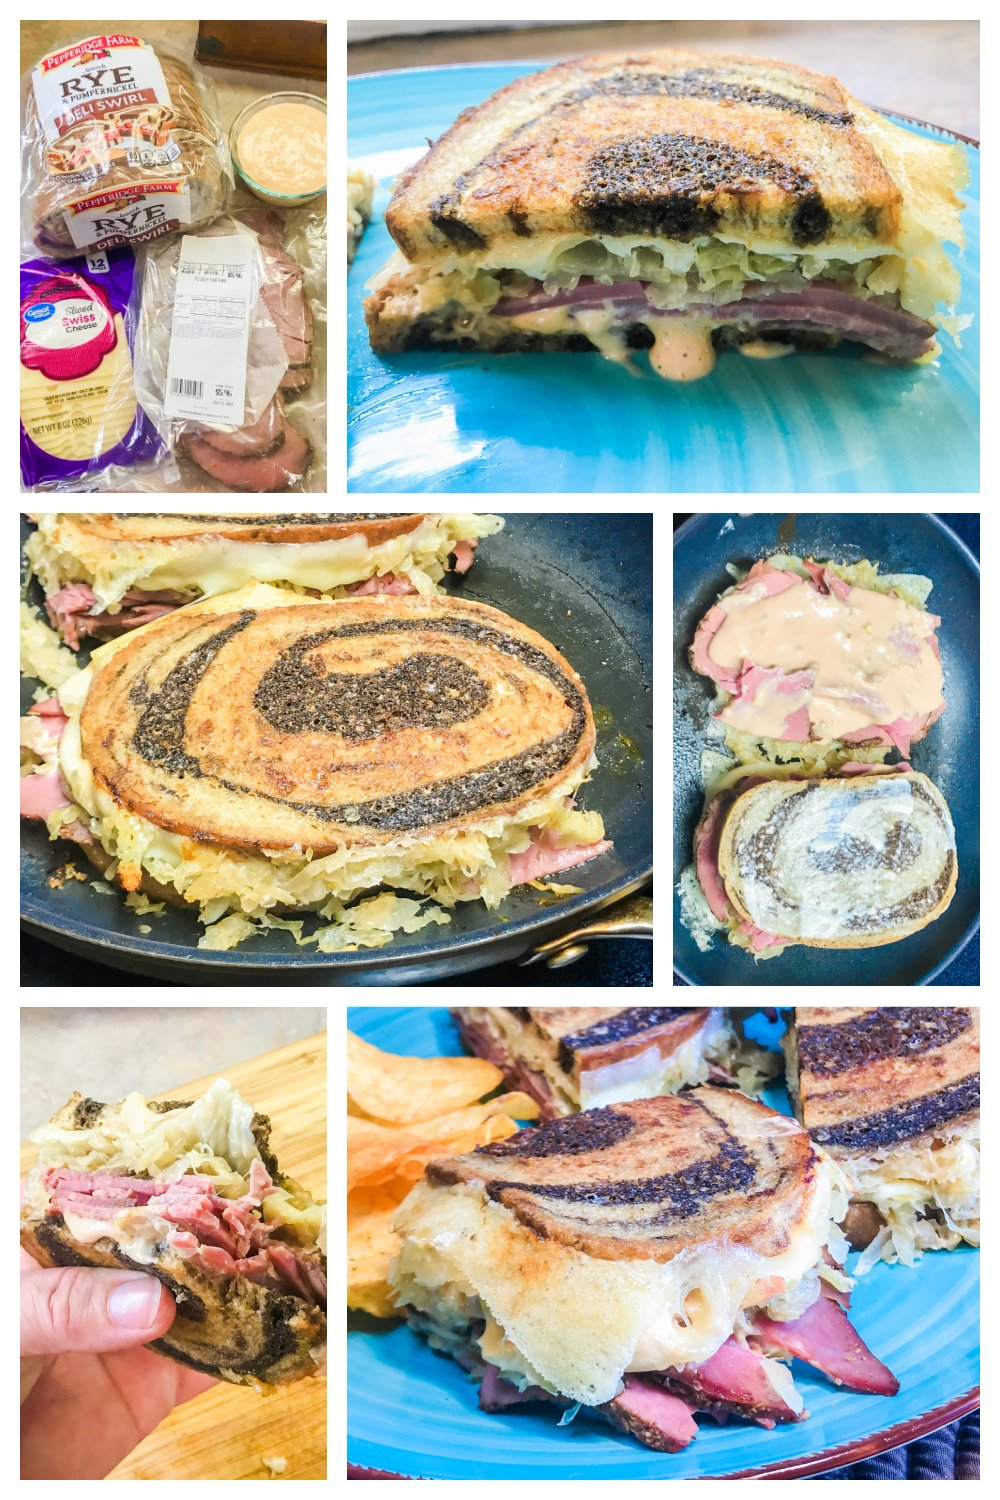 How to Make Grilled Reuben Sandwiches.